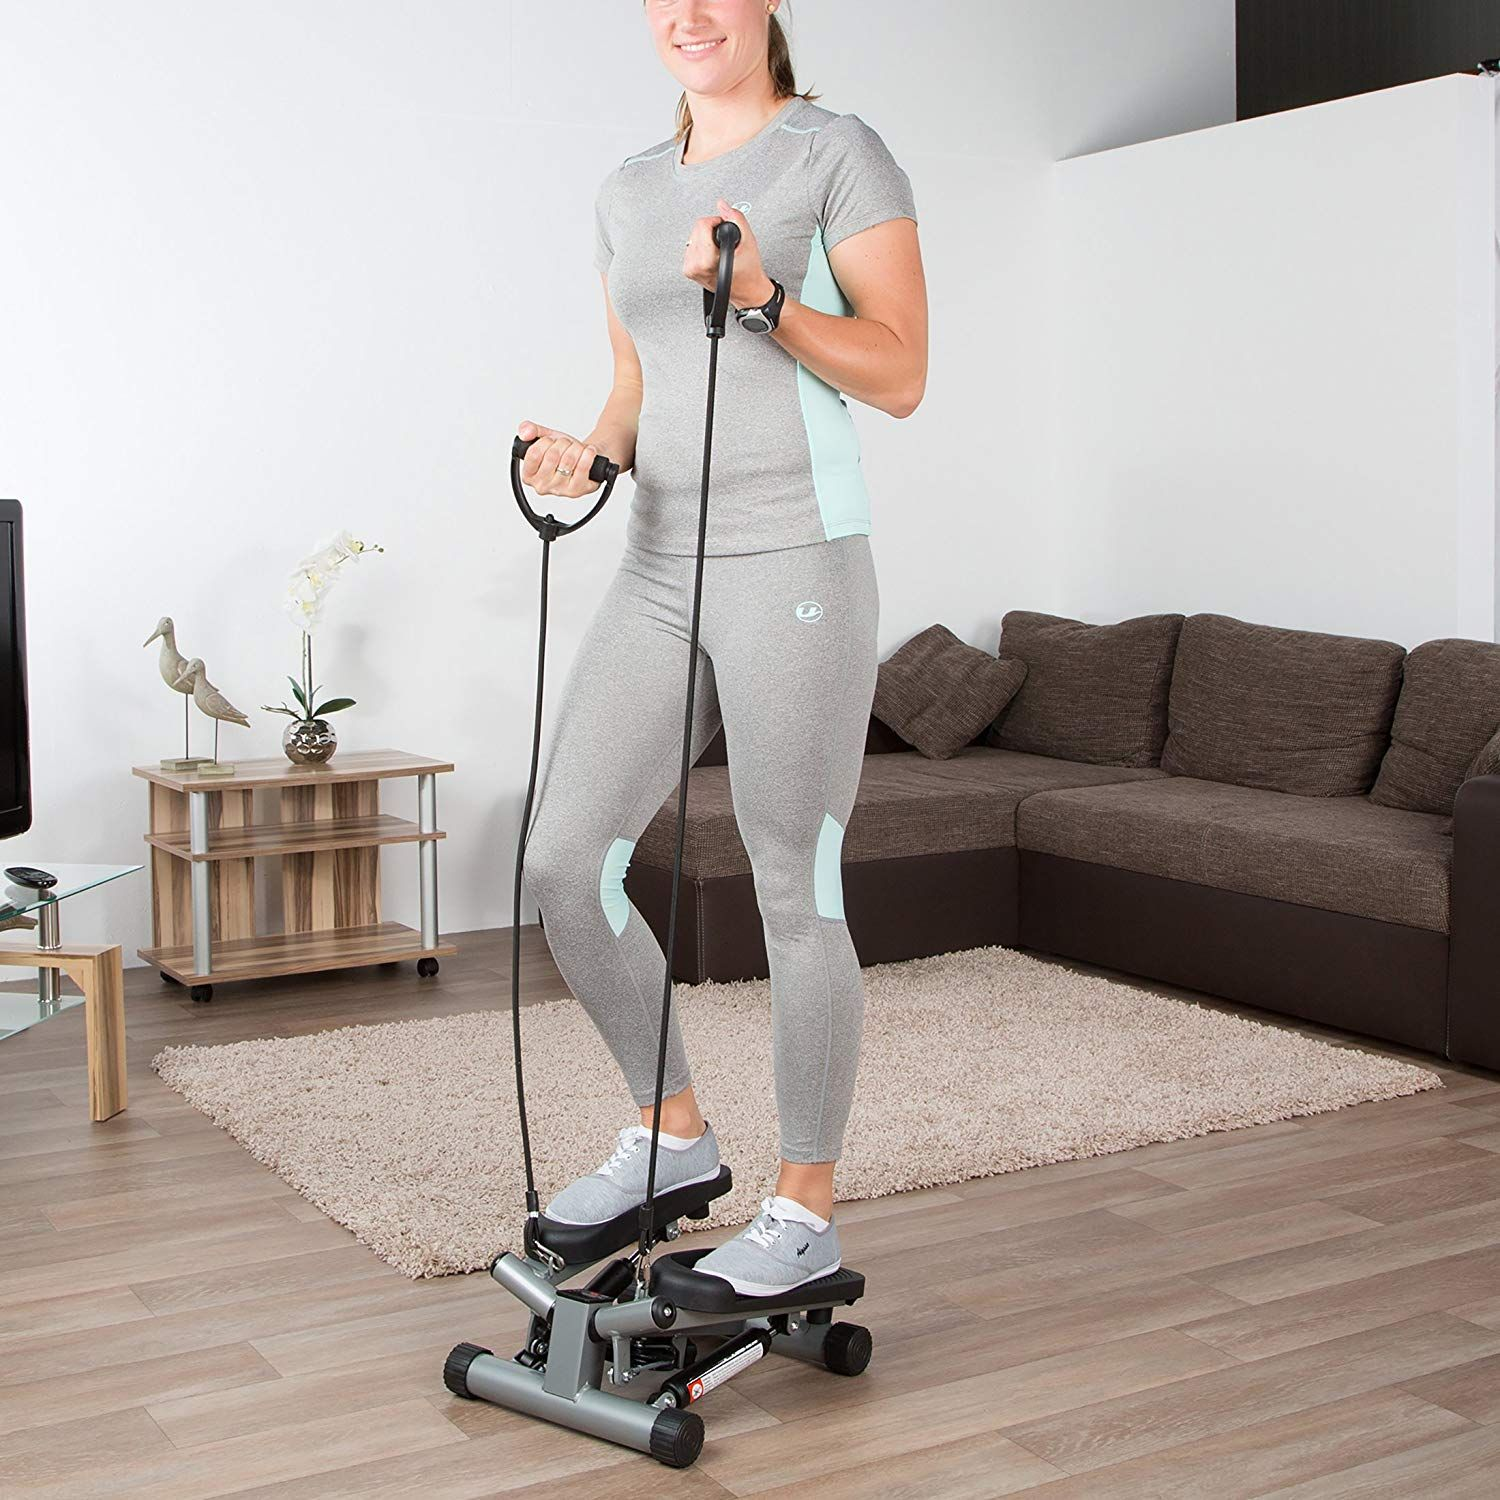 Ultrasport Swing Stepper bandes élastiques/Stepper à